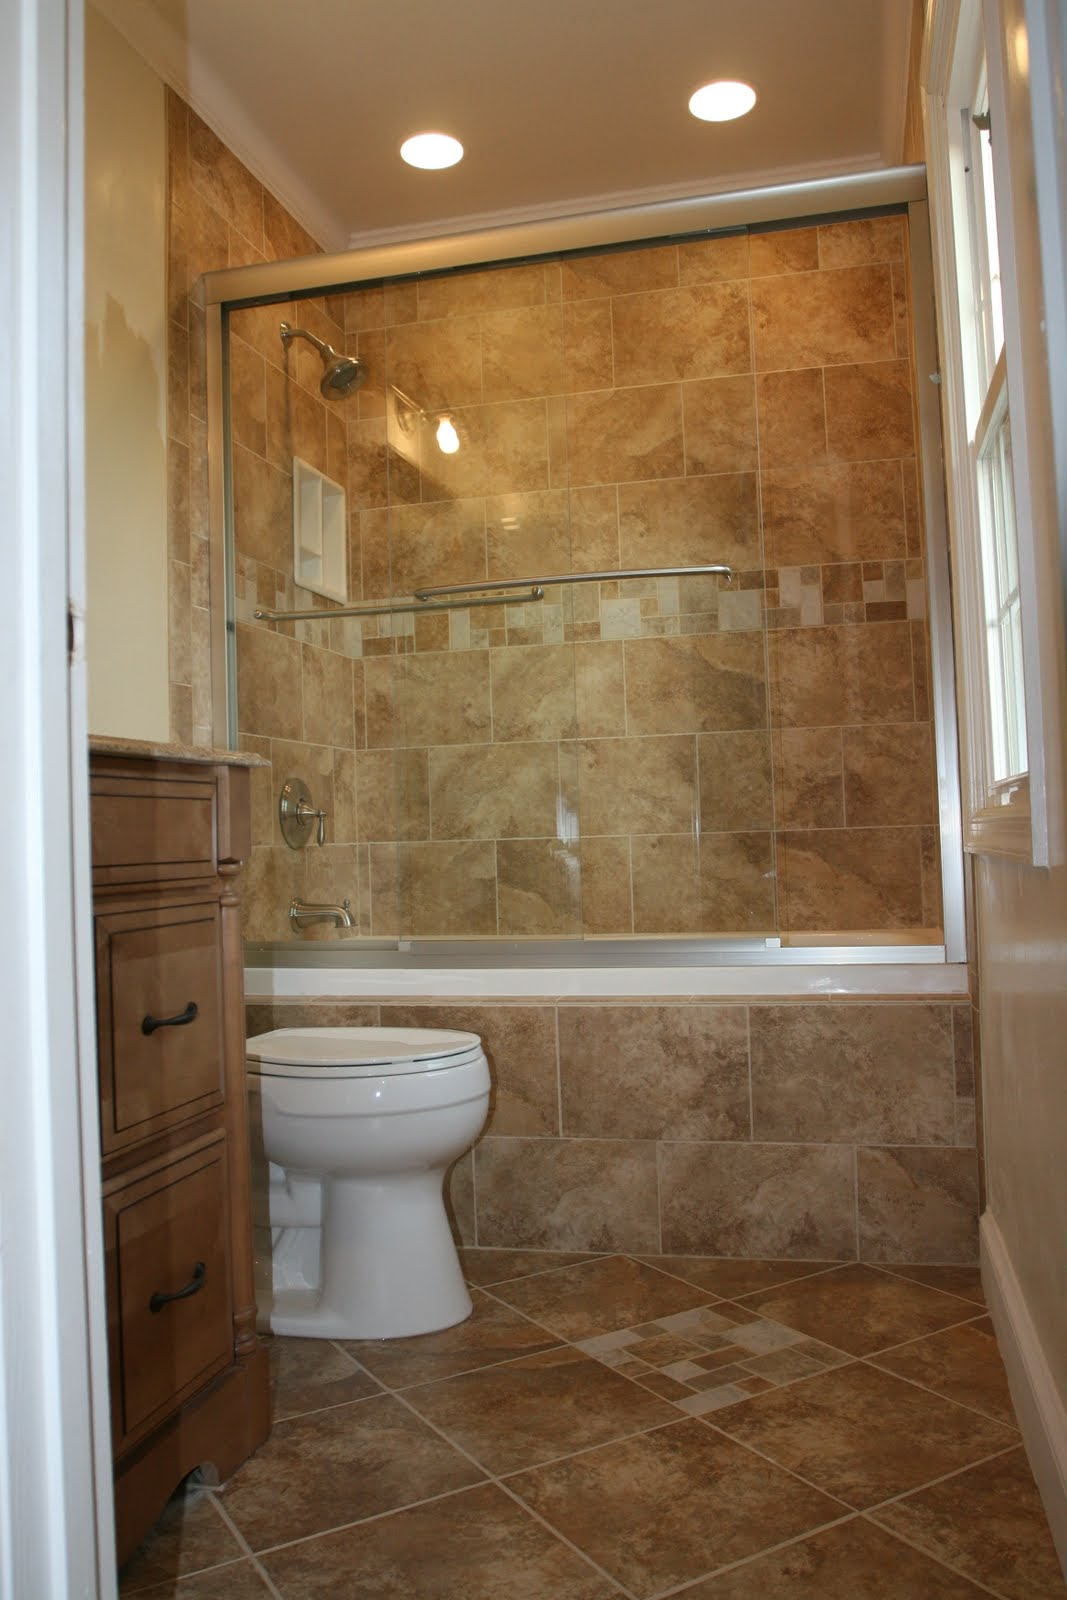 Bathroom remodeling design ideas tile shower niches - Pictures of remodeled small bathrooms ...